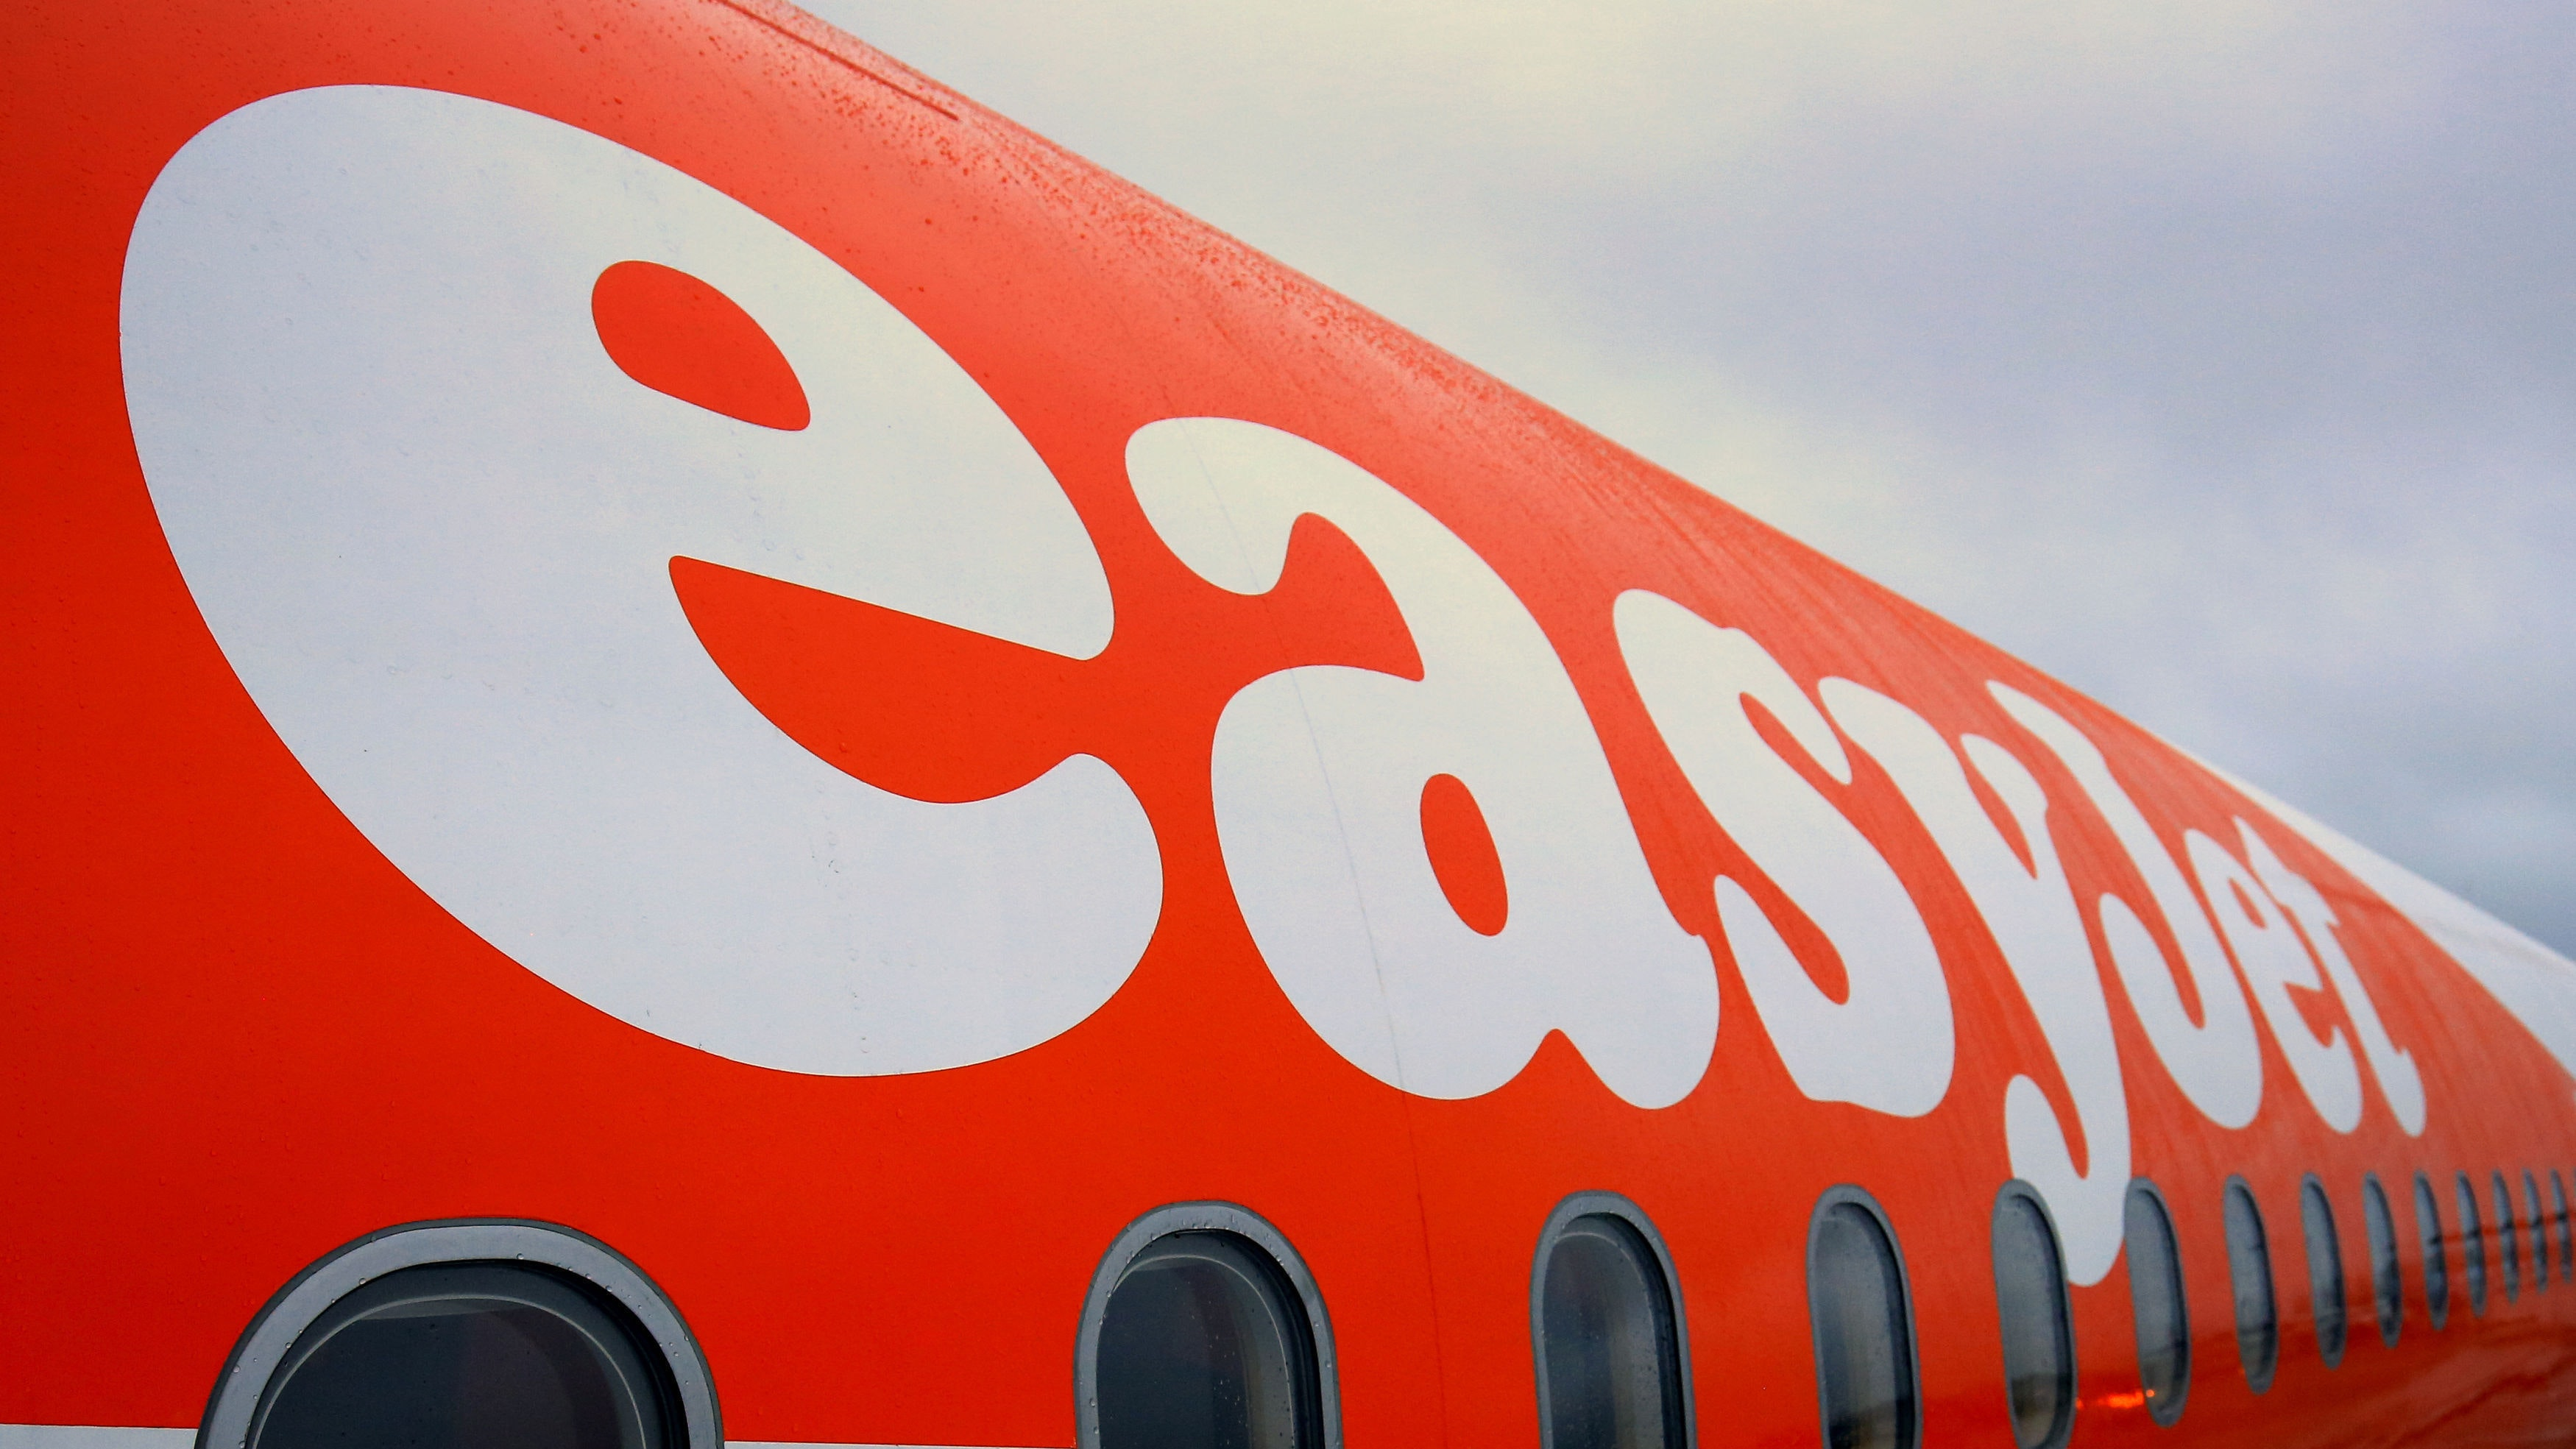 Easyjet cashes in on rival airlines' woes